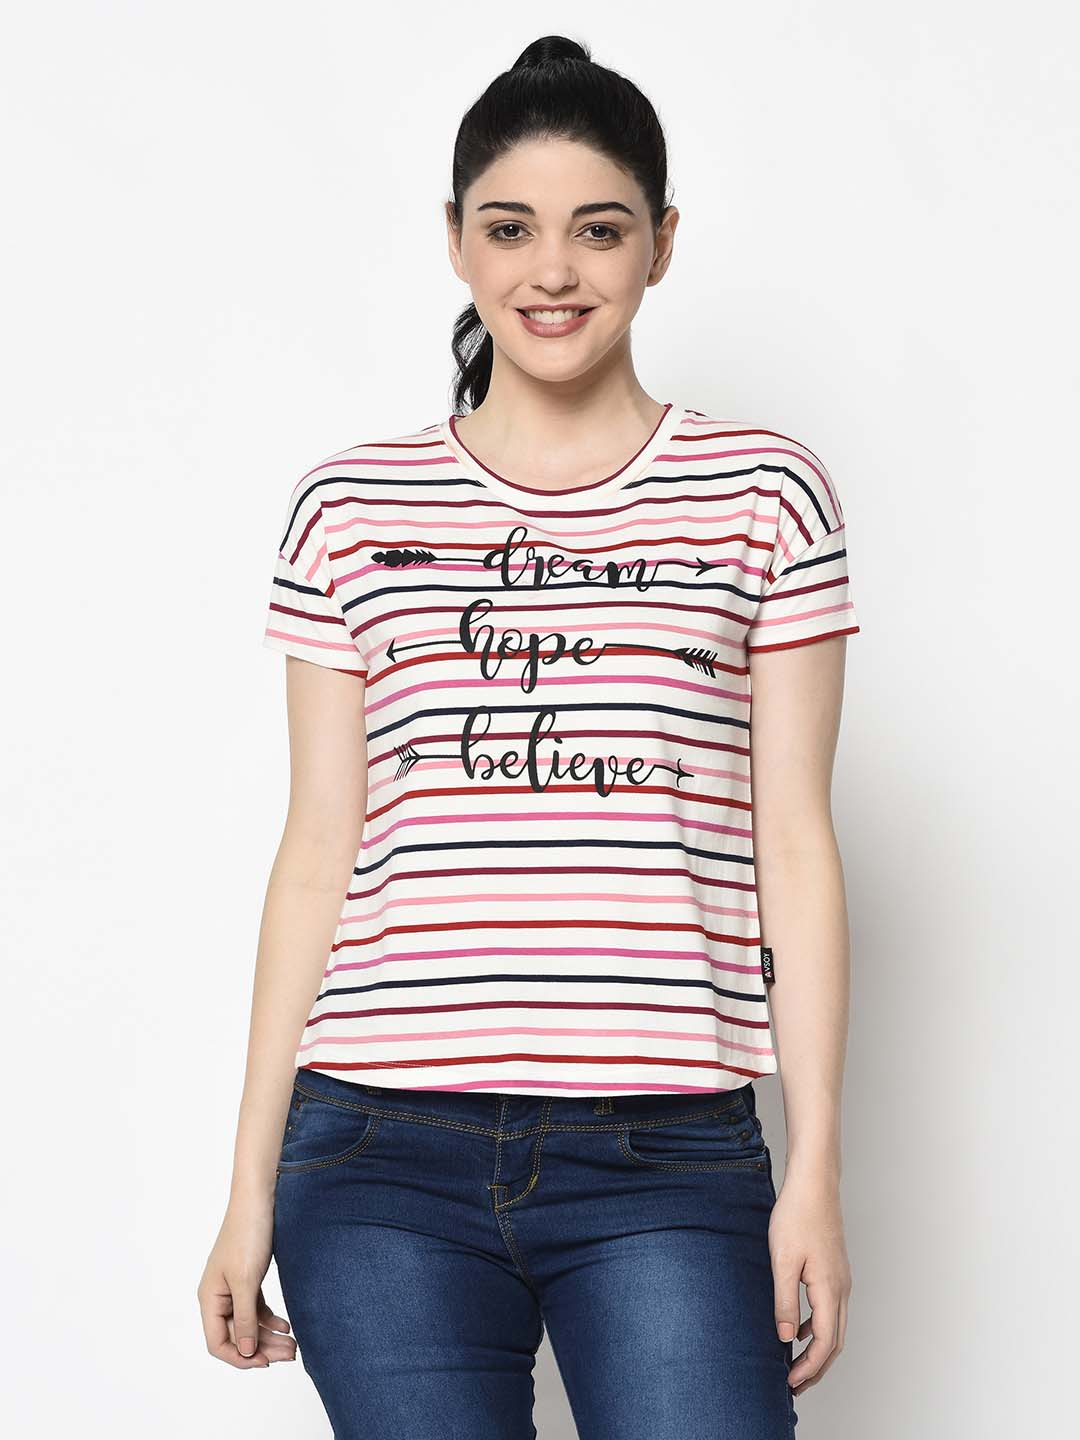 Black Graphic Pastel Pink Tee - Avsoy